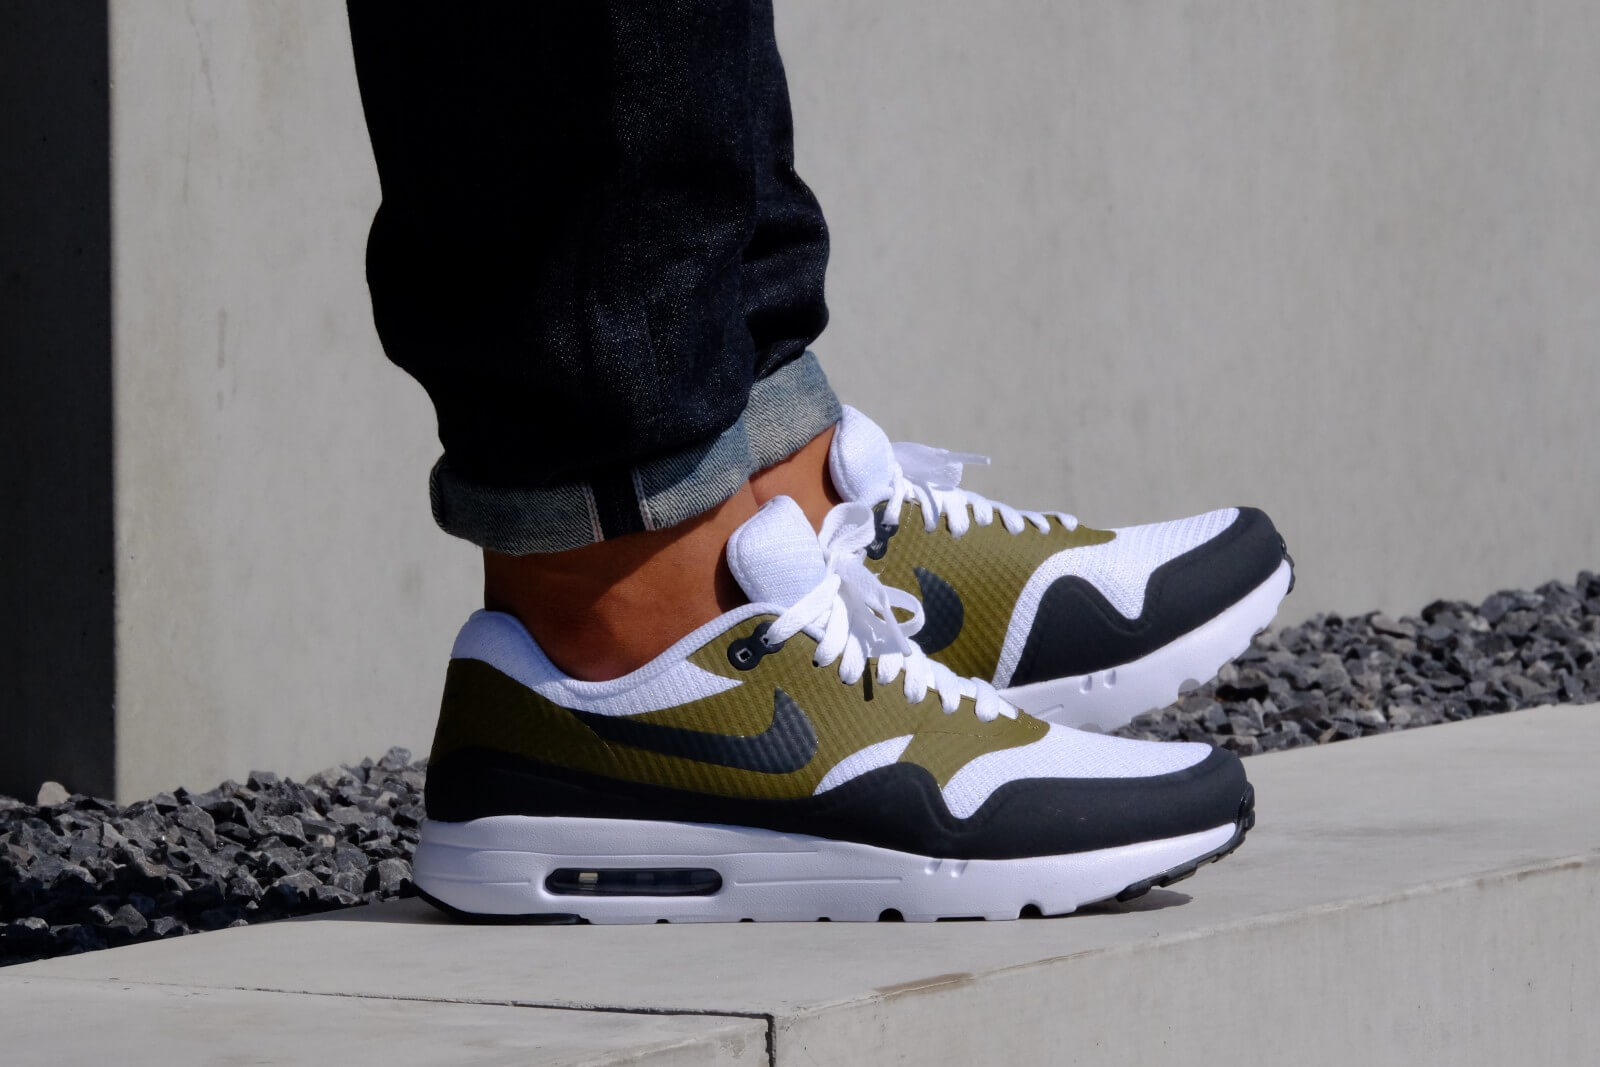 cheap website for jordan shoes. nike air max 1 olive white pink fb02c7800